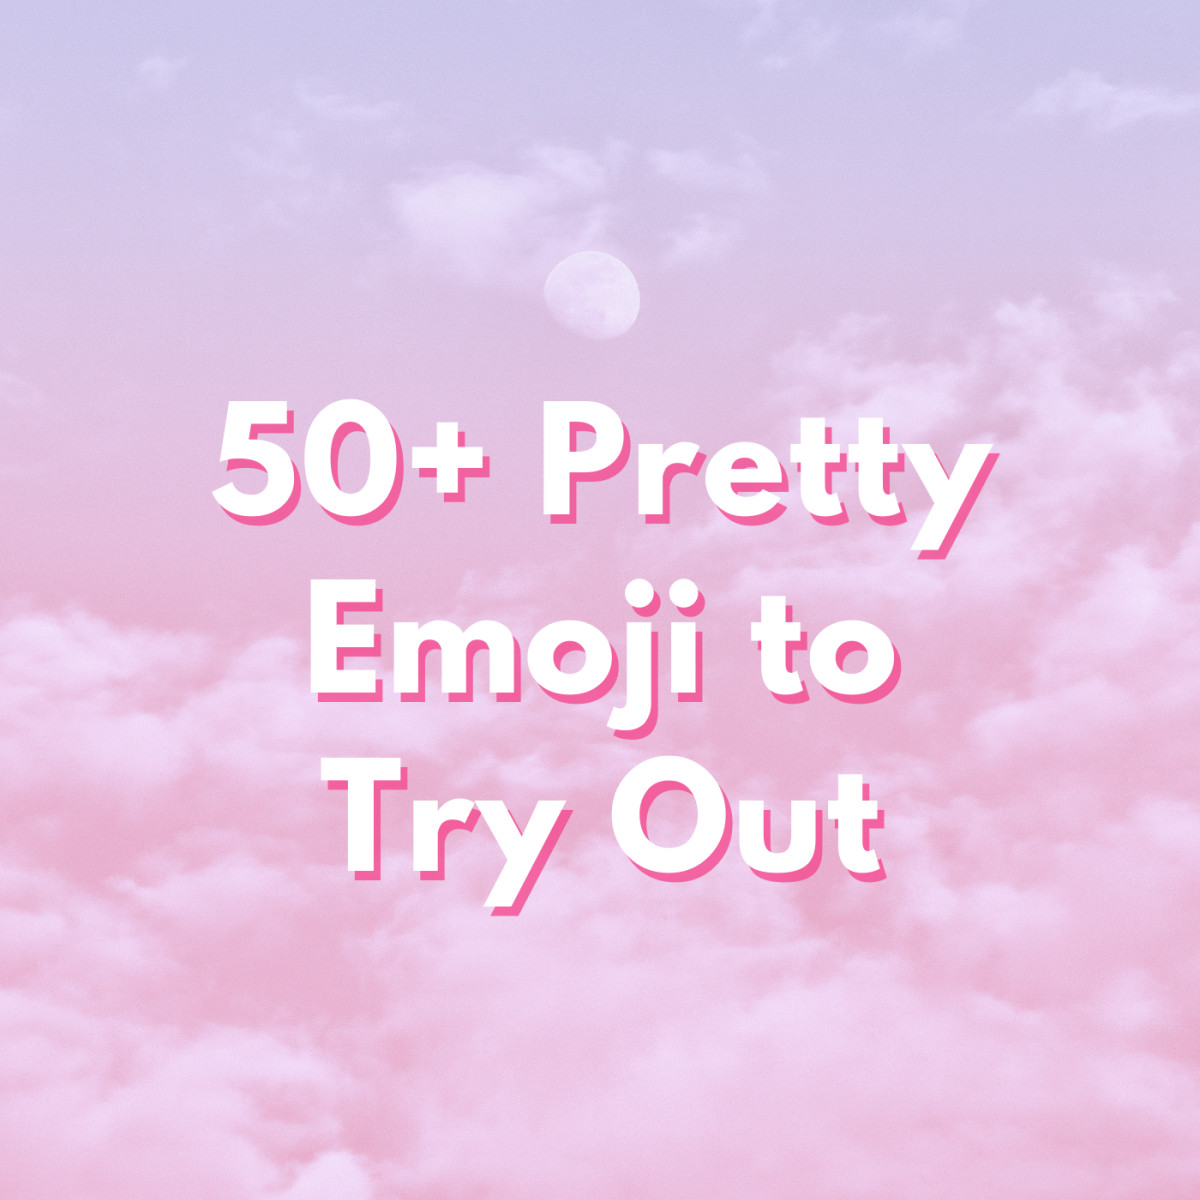 In this guide, we'll be taking a look at pretty emoji you can make use of!